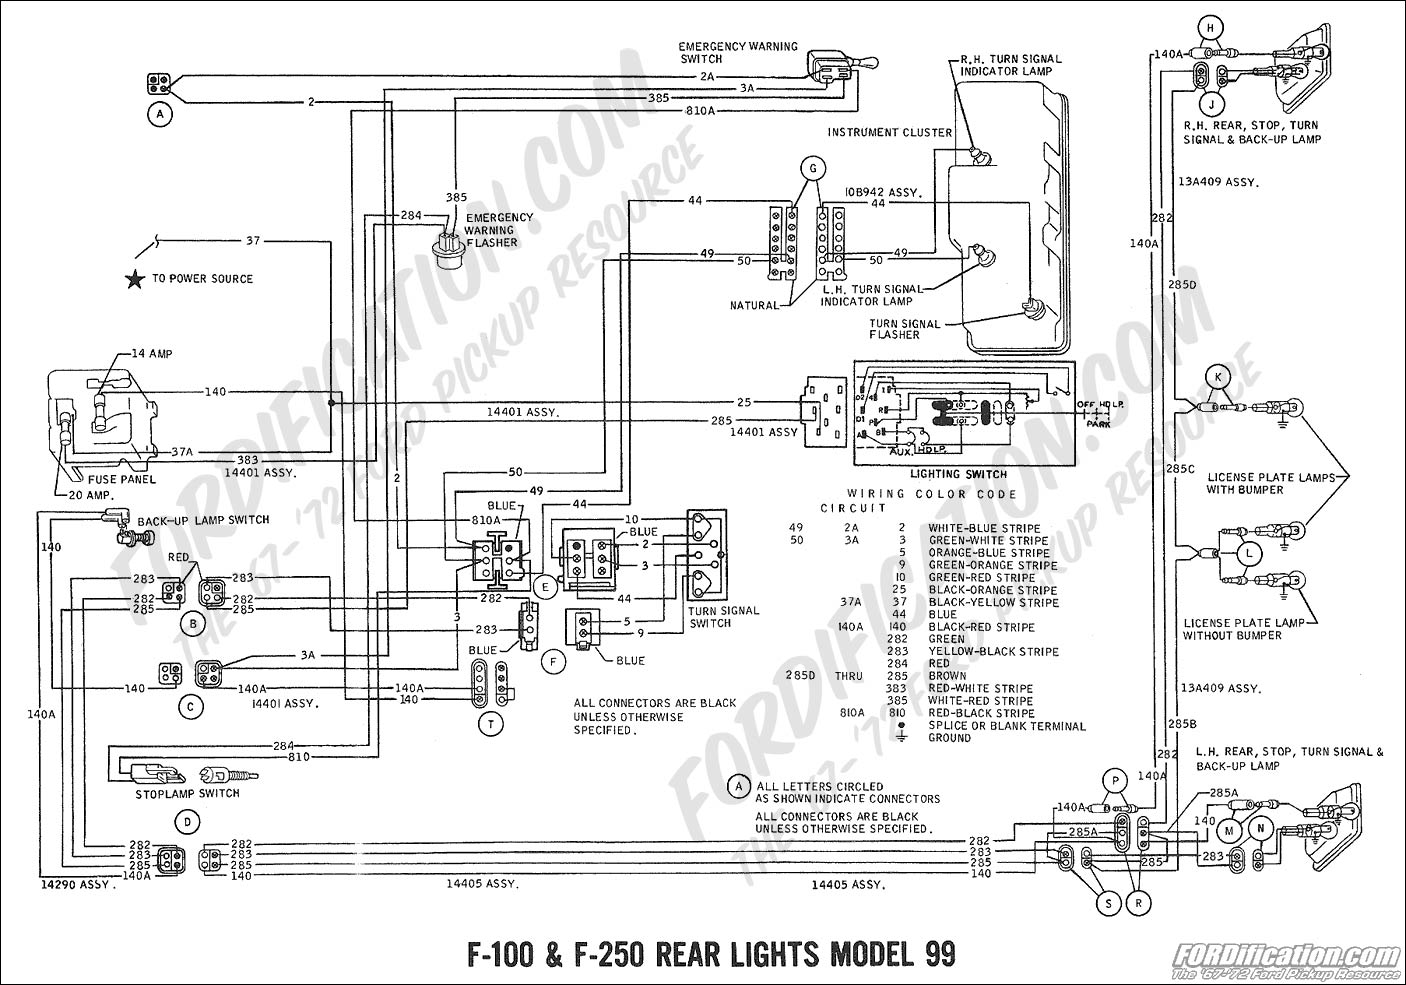 Whats The Purpose Of The Diodes In This Circuit additionally ElectricalCircuitsRelays furthermore 230v 230v Ac Relay Circuit as well 2003 Honda Accord Foglight Wiring Harness additionally 12v Inverter Circuit Using 4013. on driving light wiring diagram with relay